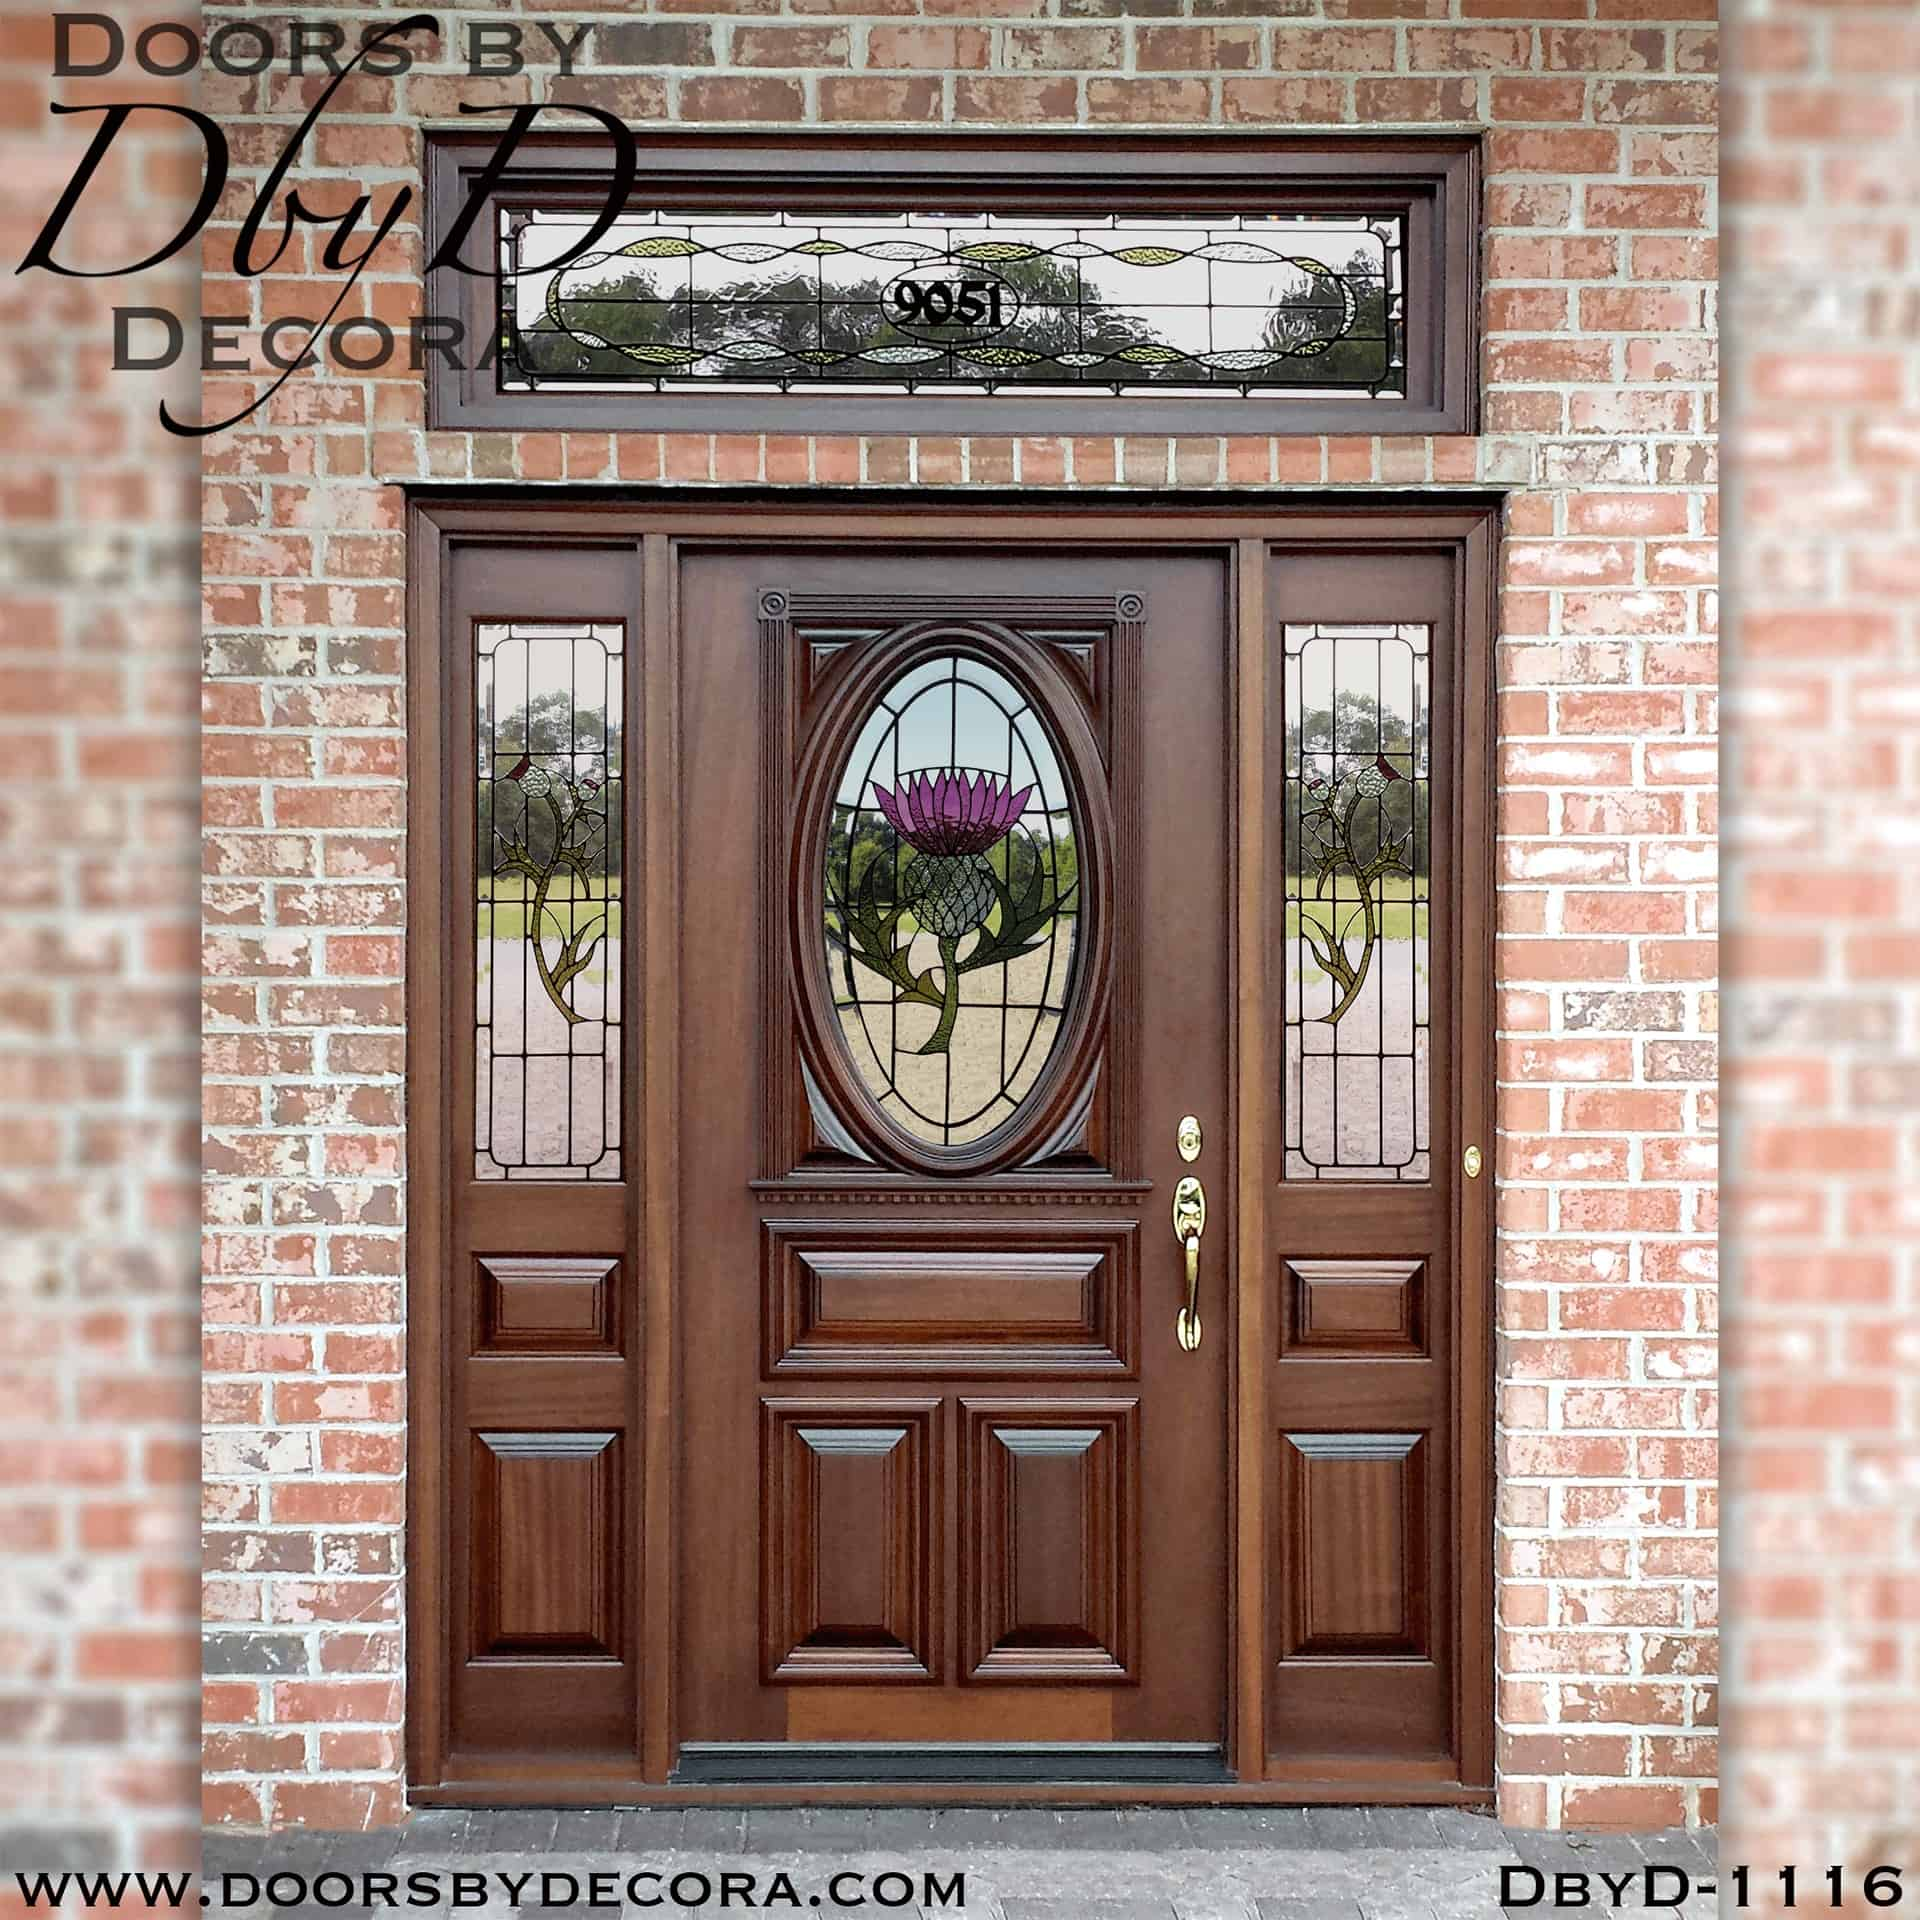 Custom Leaded Glass Thistle Entry Solid Wood Entry Doors By Decora